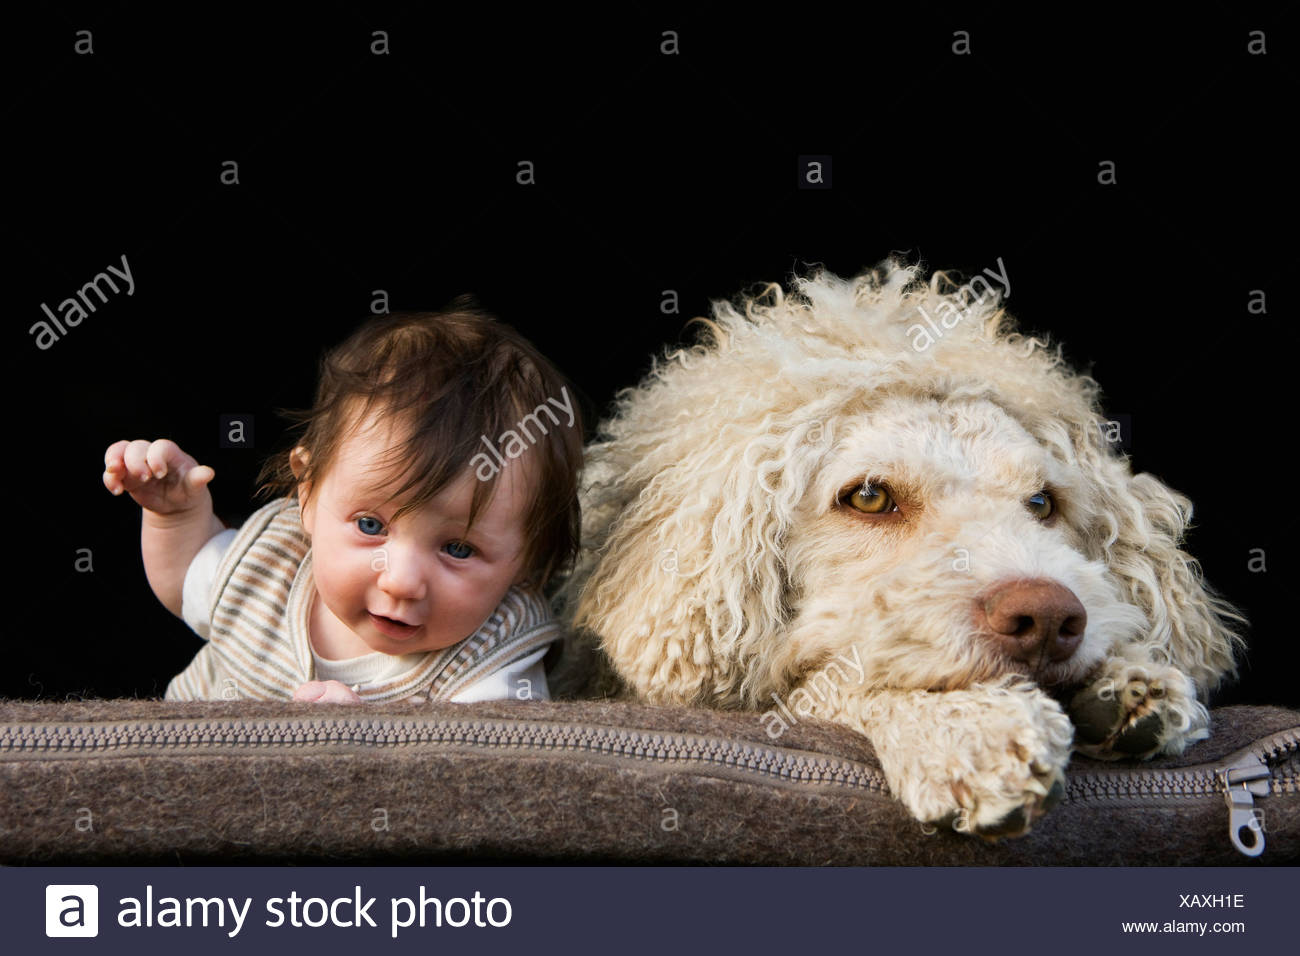 A dog and baby lying on their stomachs side by side - Stock Image